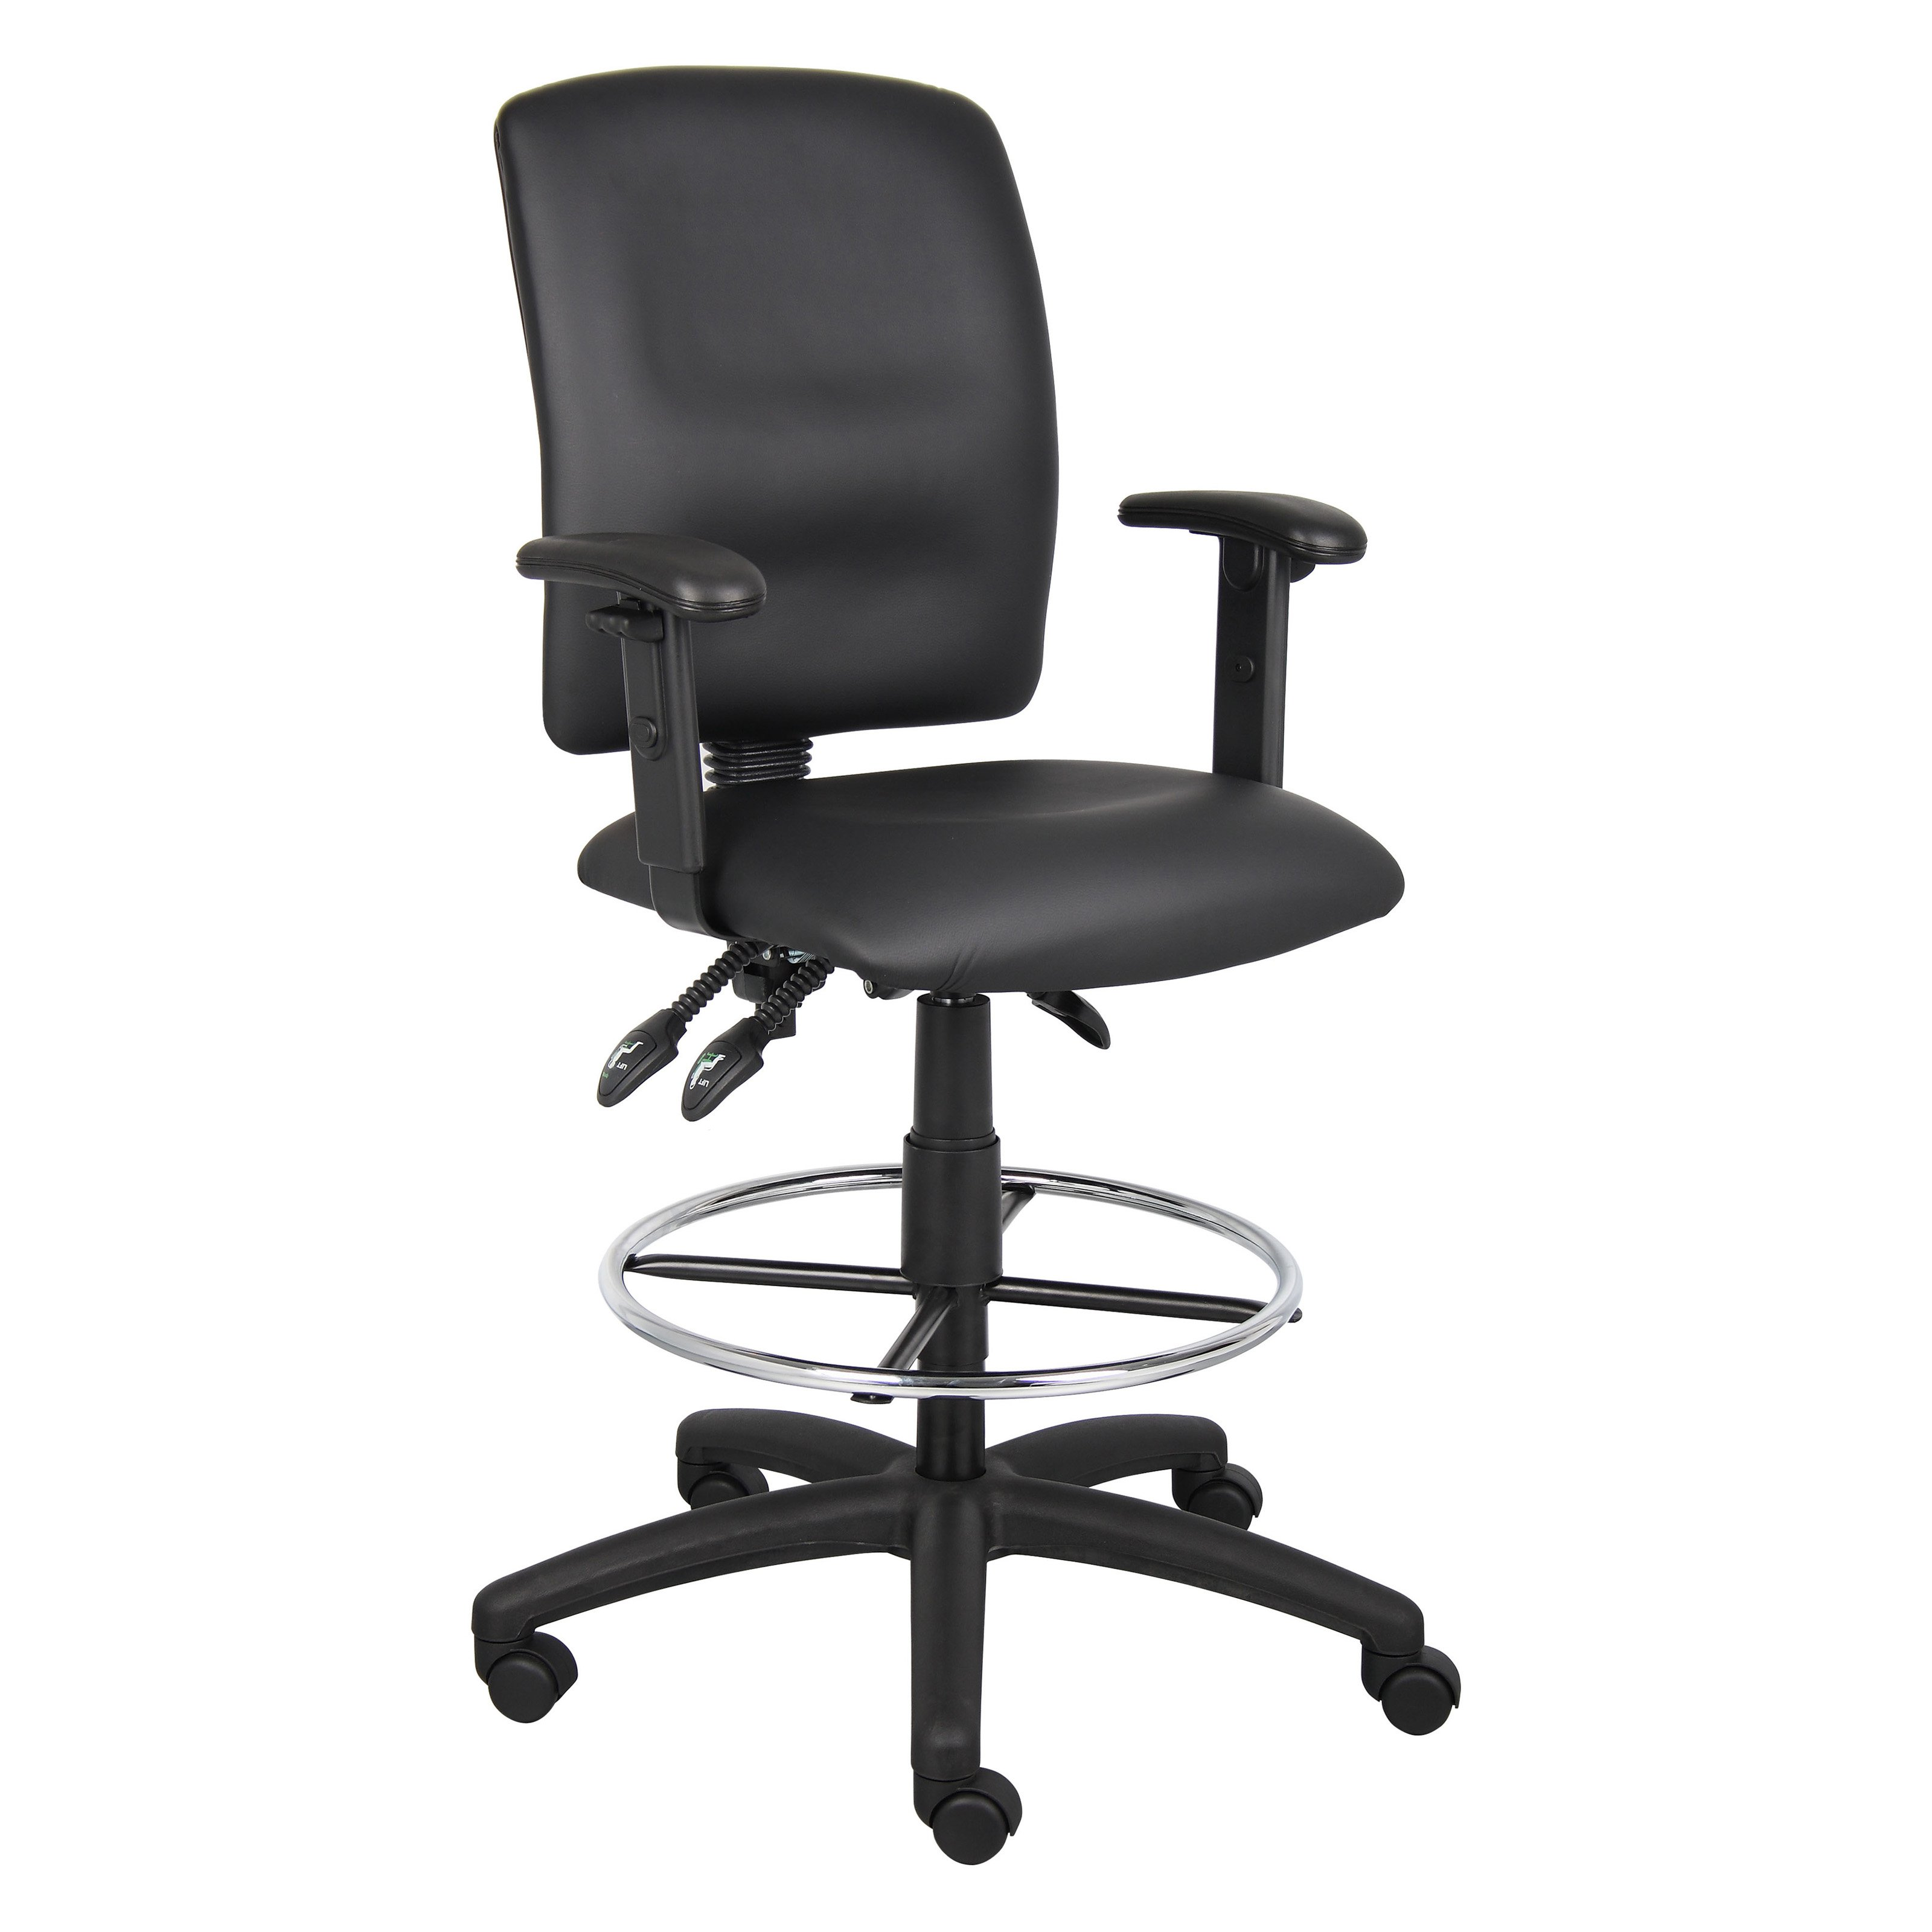 Ergonomic Multi Function Drafting Stool with Adjustable Arms